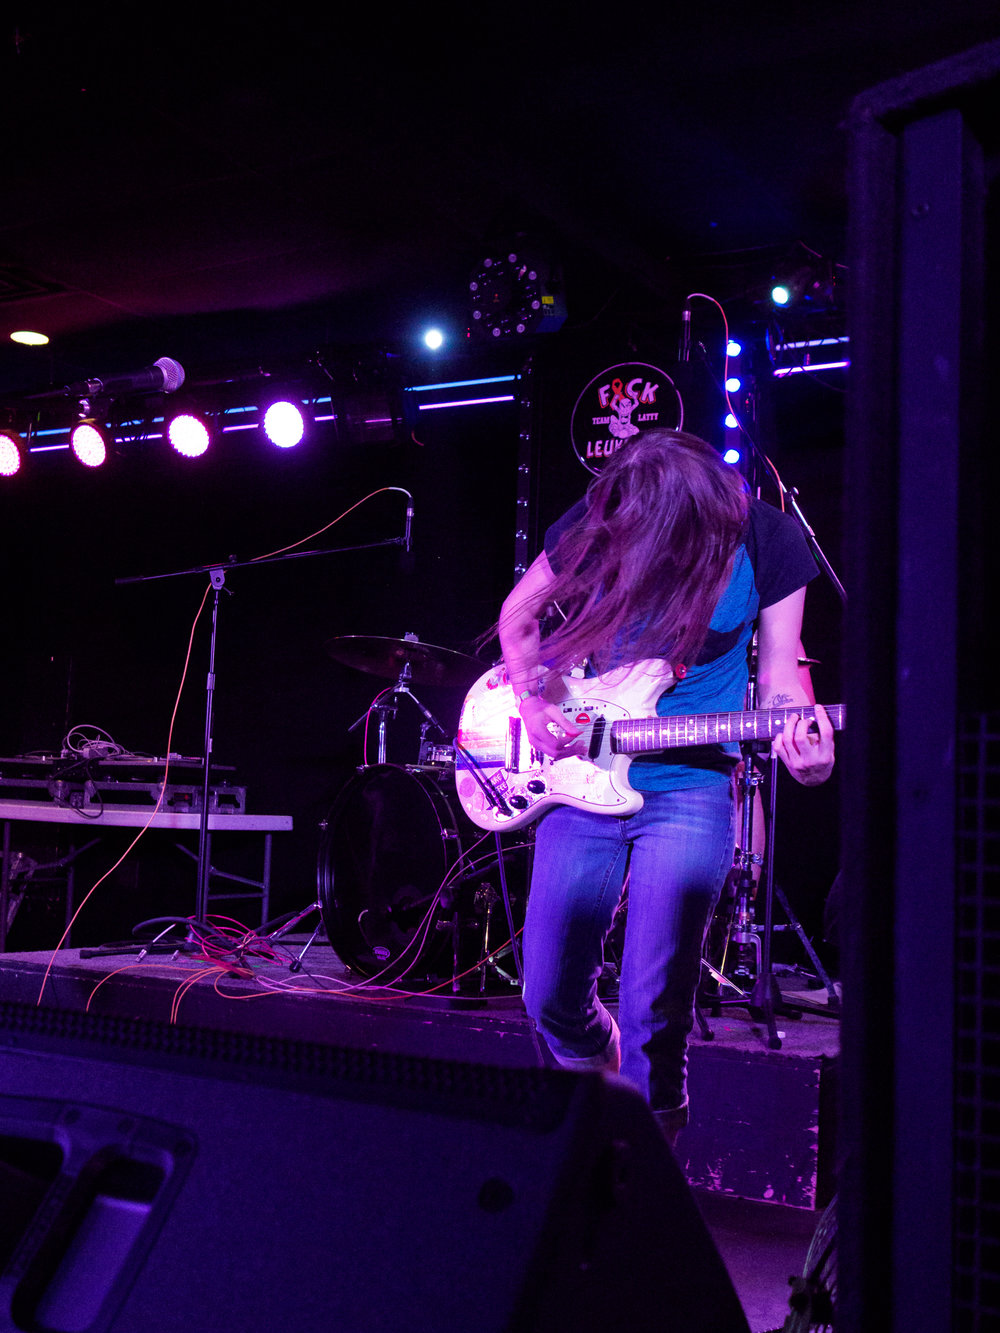 17-06-10_Concert_at_the_Foundry_6100477.JPG